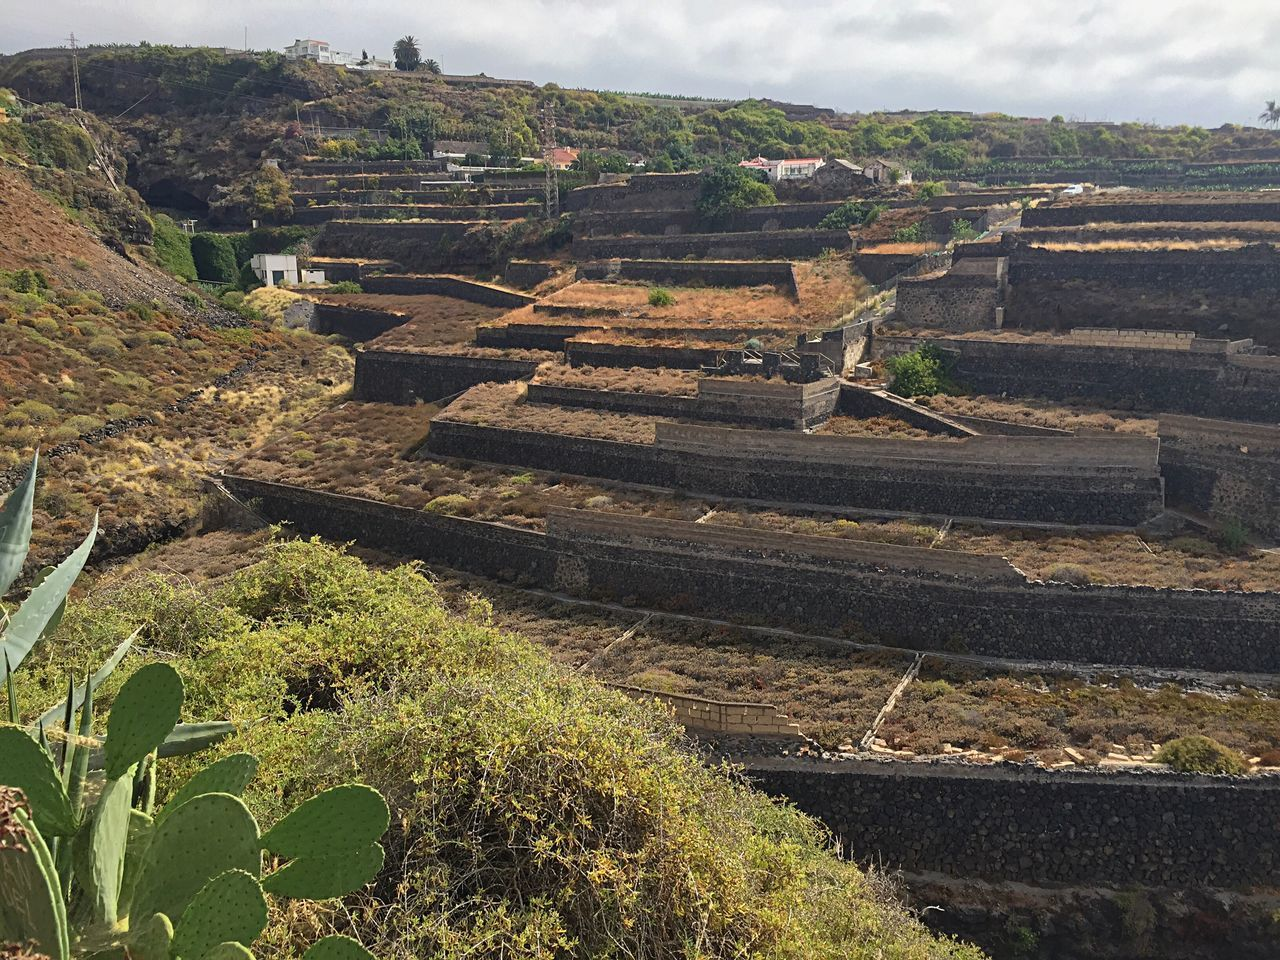 agriculture, field, growth, rural scene, nature, outdoors, no people, day, terraced field